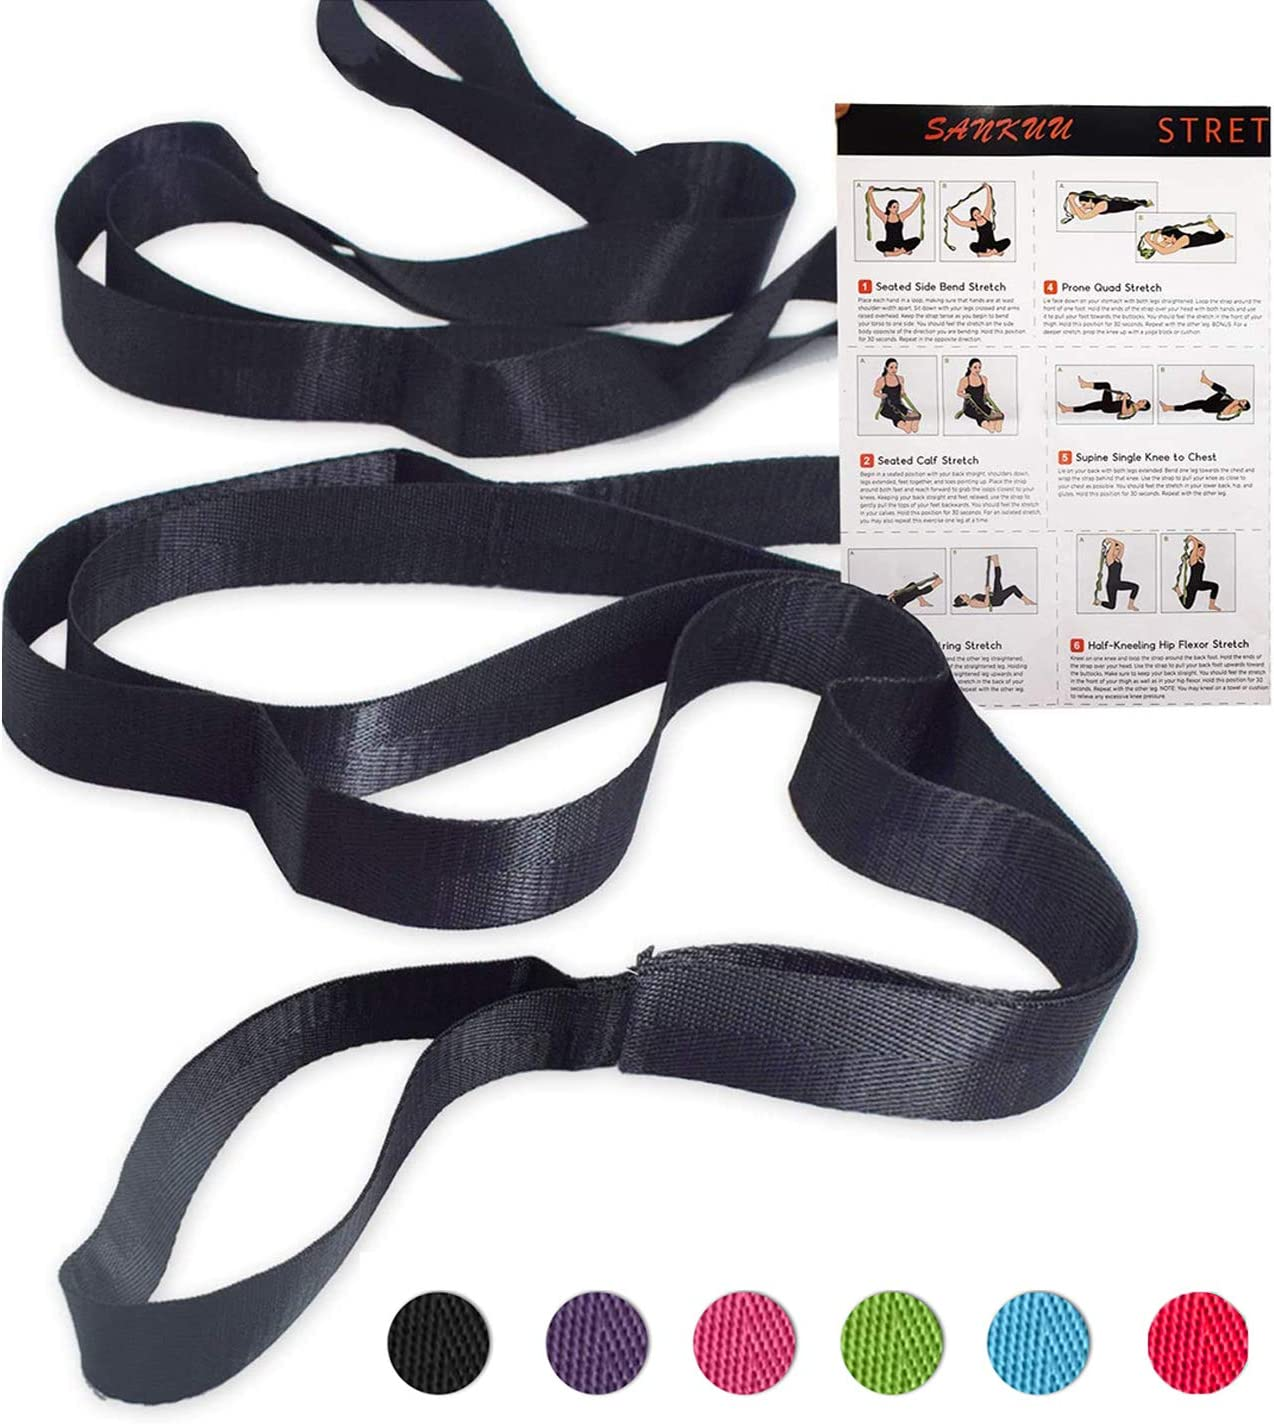 Amazon Com Sankuu 12 Loops Yoga Stretch Strap For Physical Therapy With Exercise Instruction Sports Outdoors